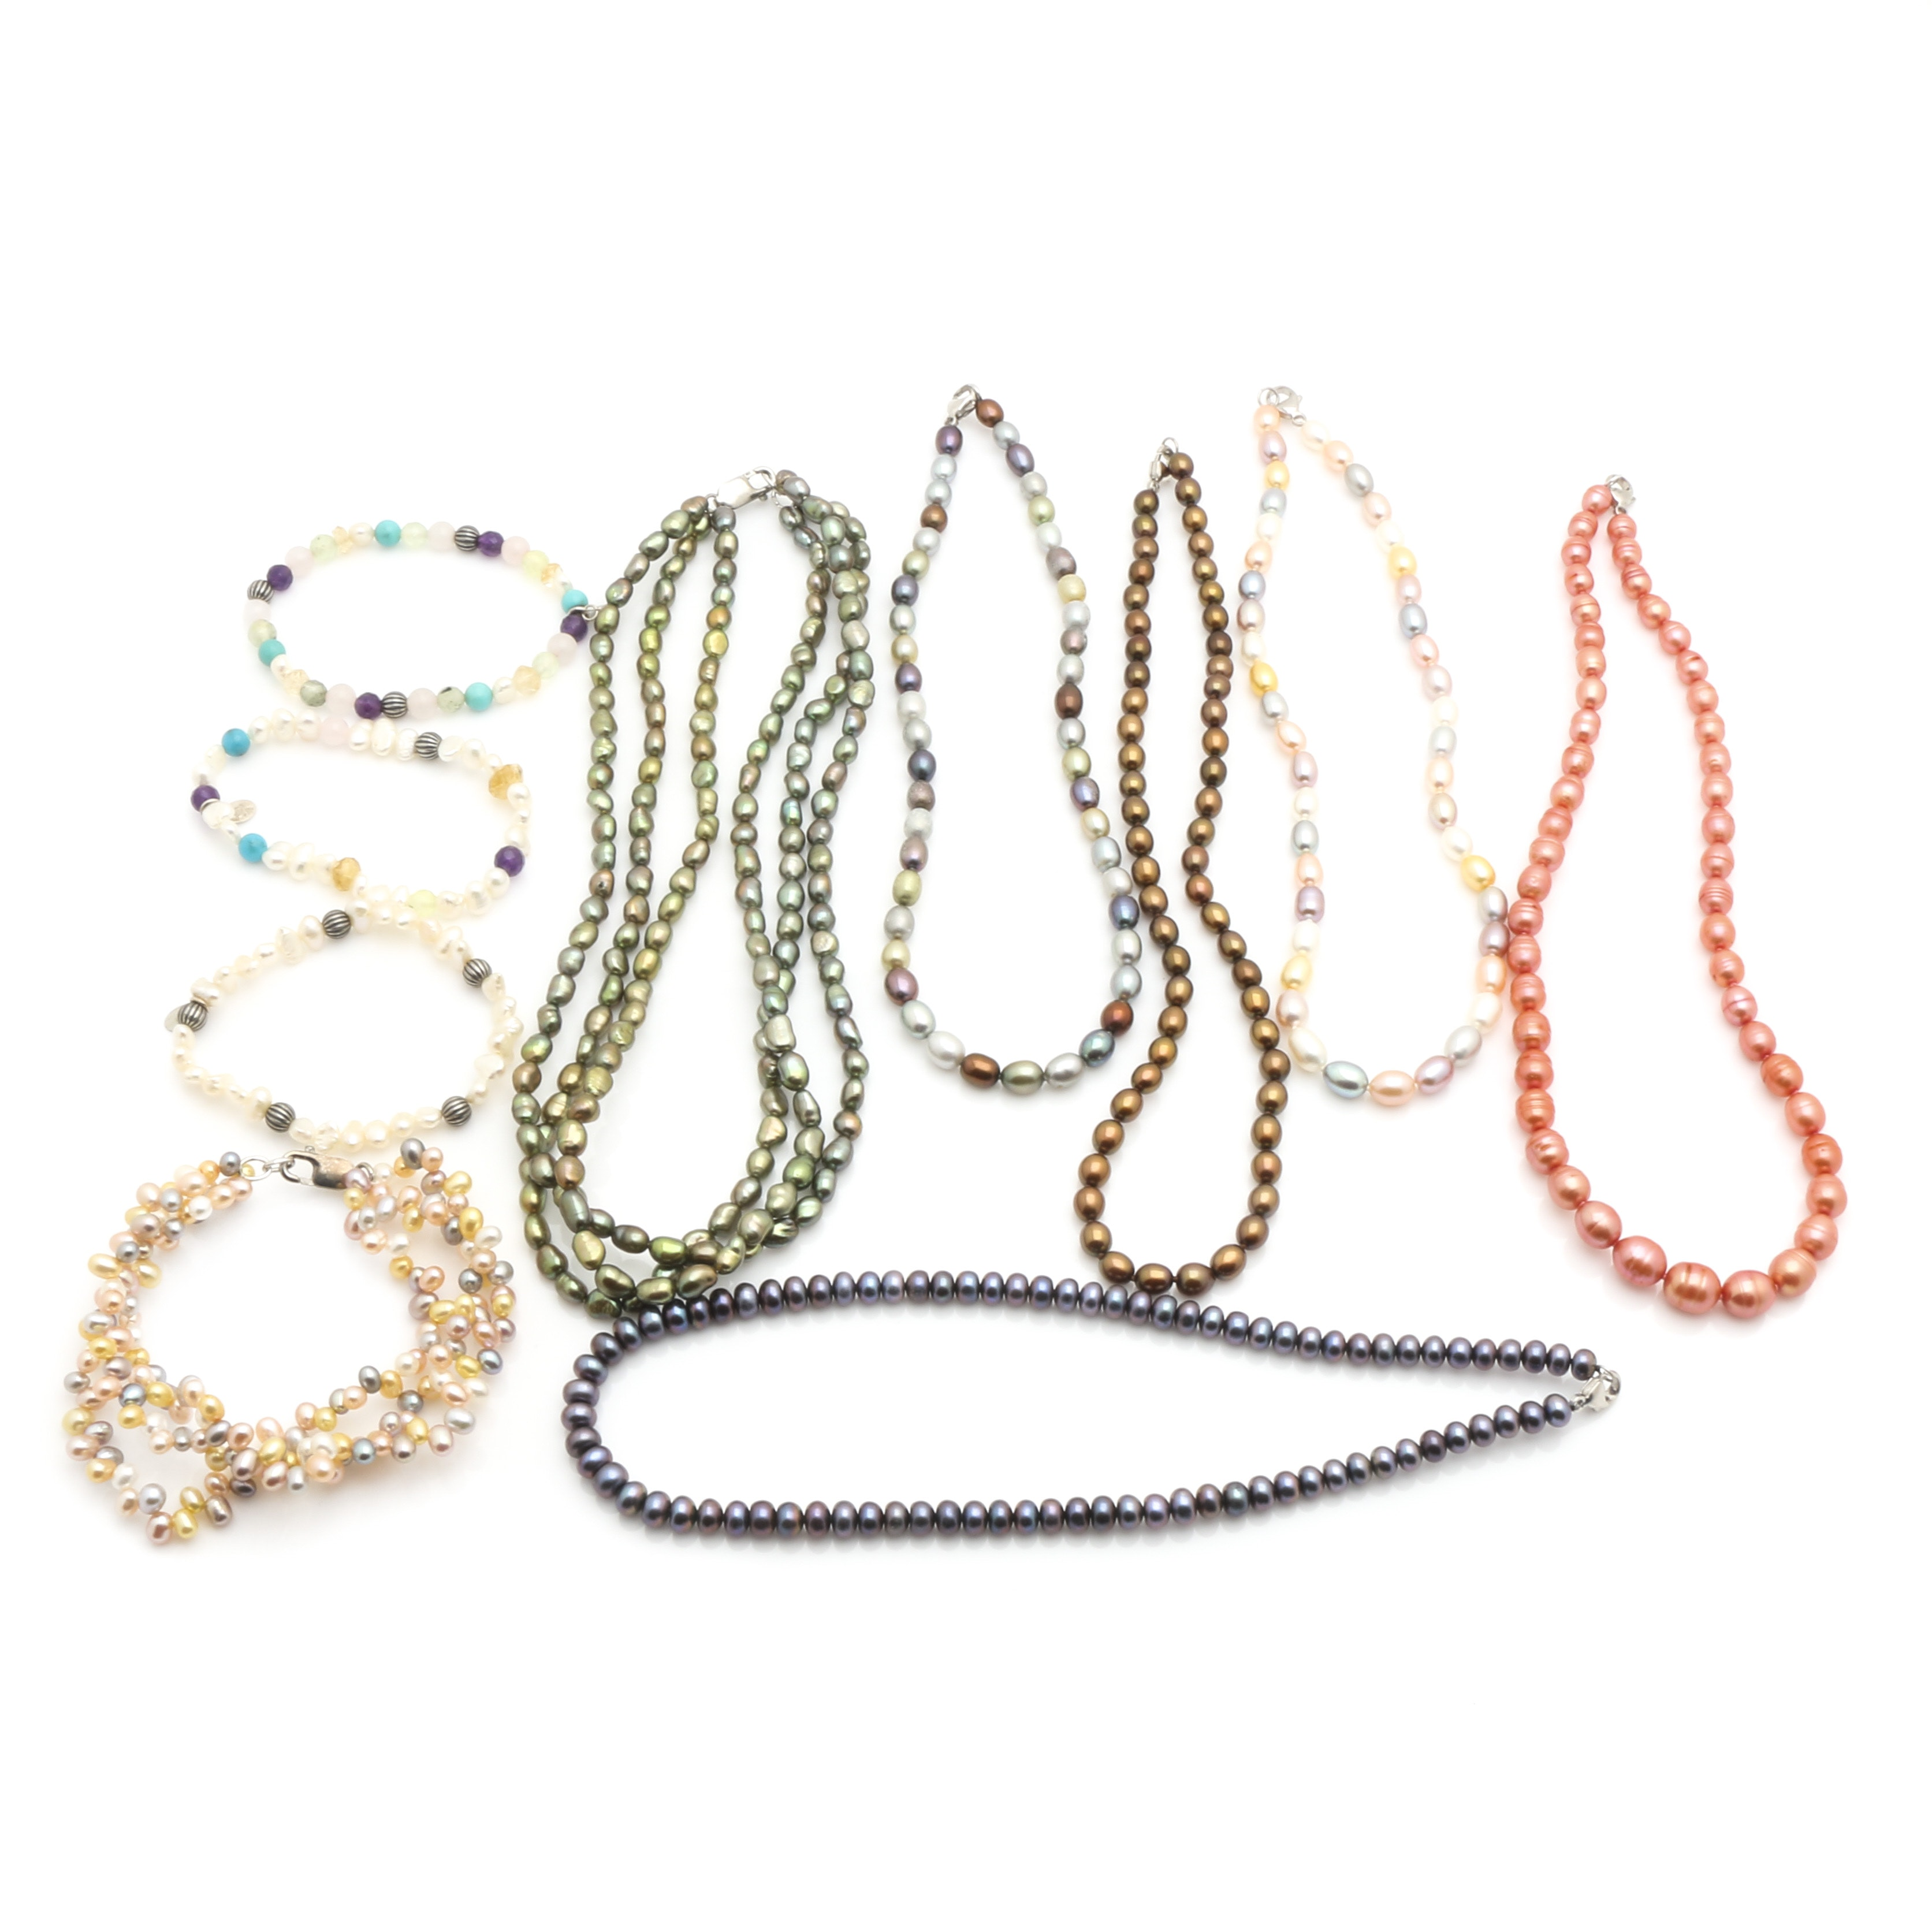 Cultured Freshwater Pearl Jewelry Including Sterling